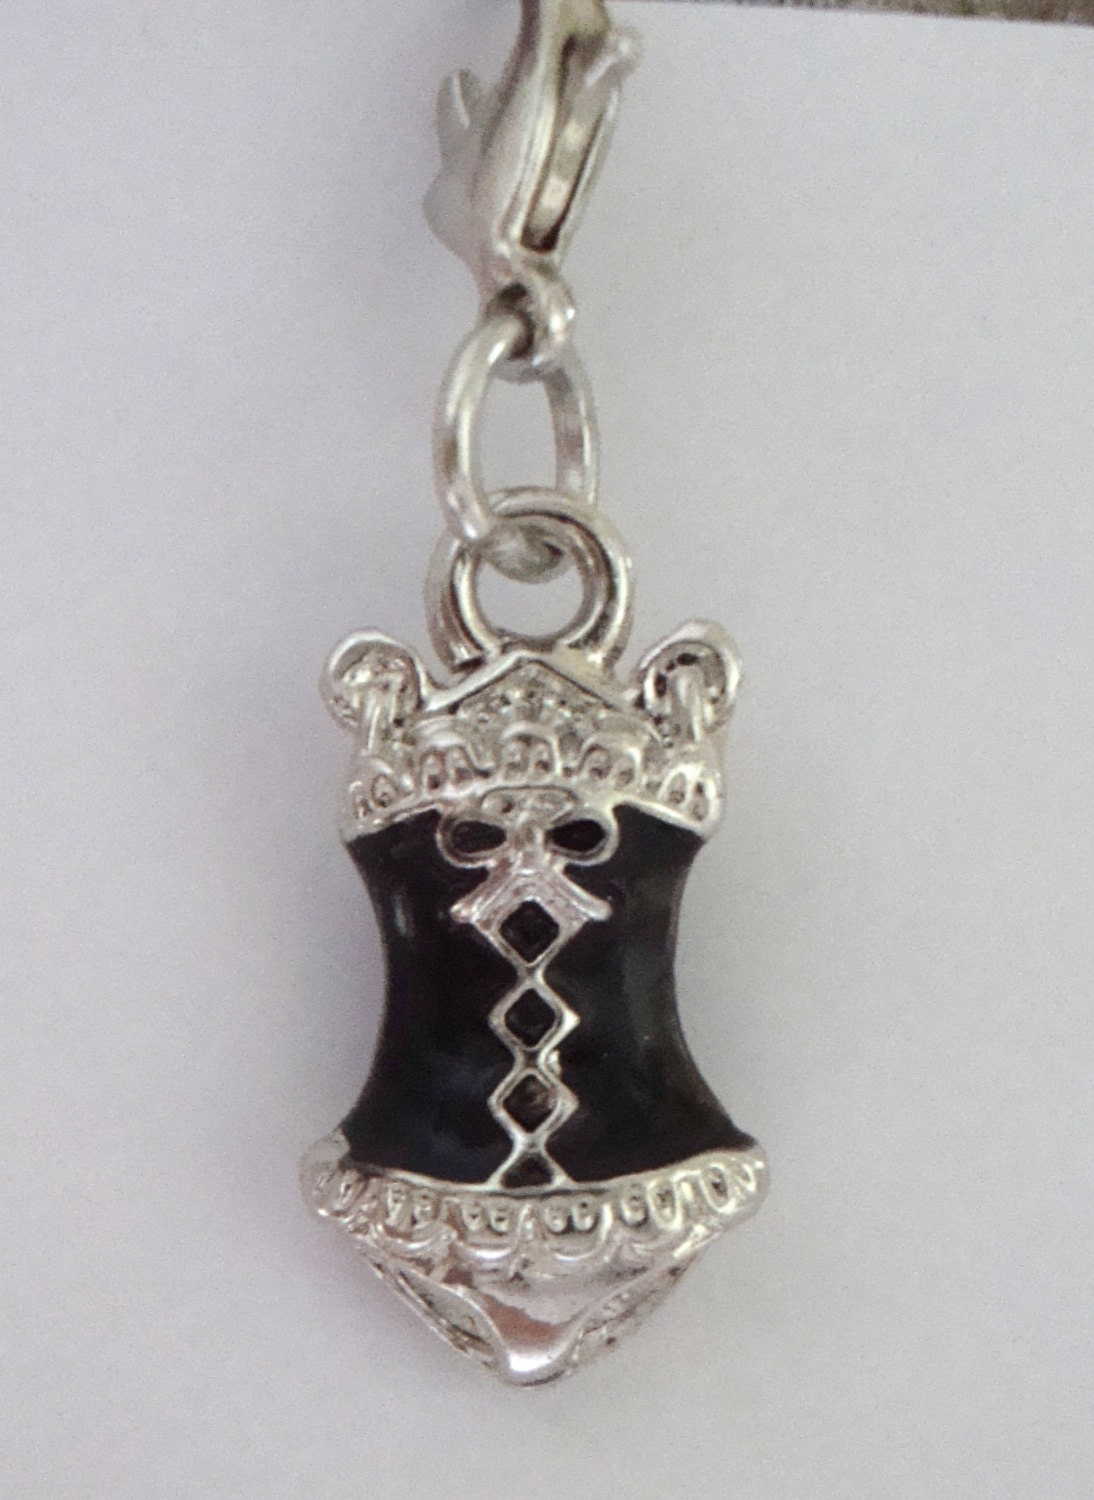 Lingerie Charm Lingerie Jewelry Charm Lobster Clasp Charm